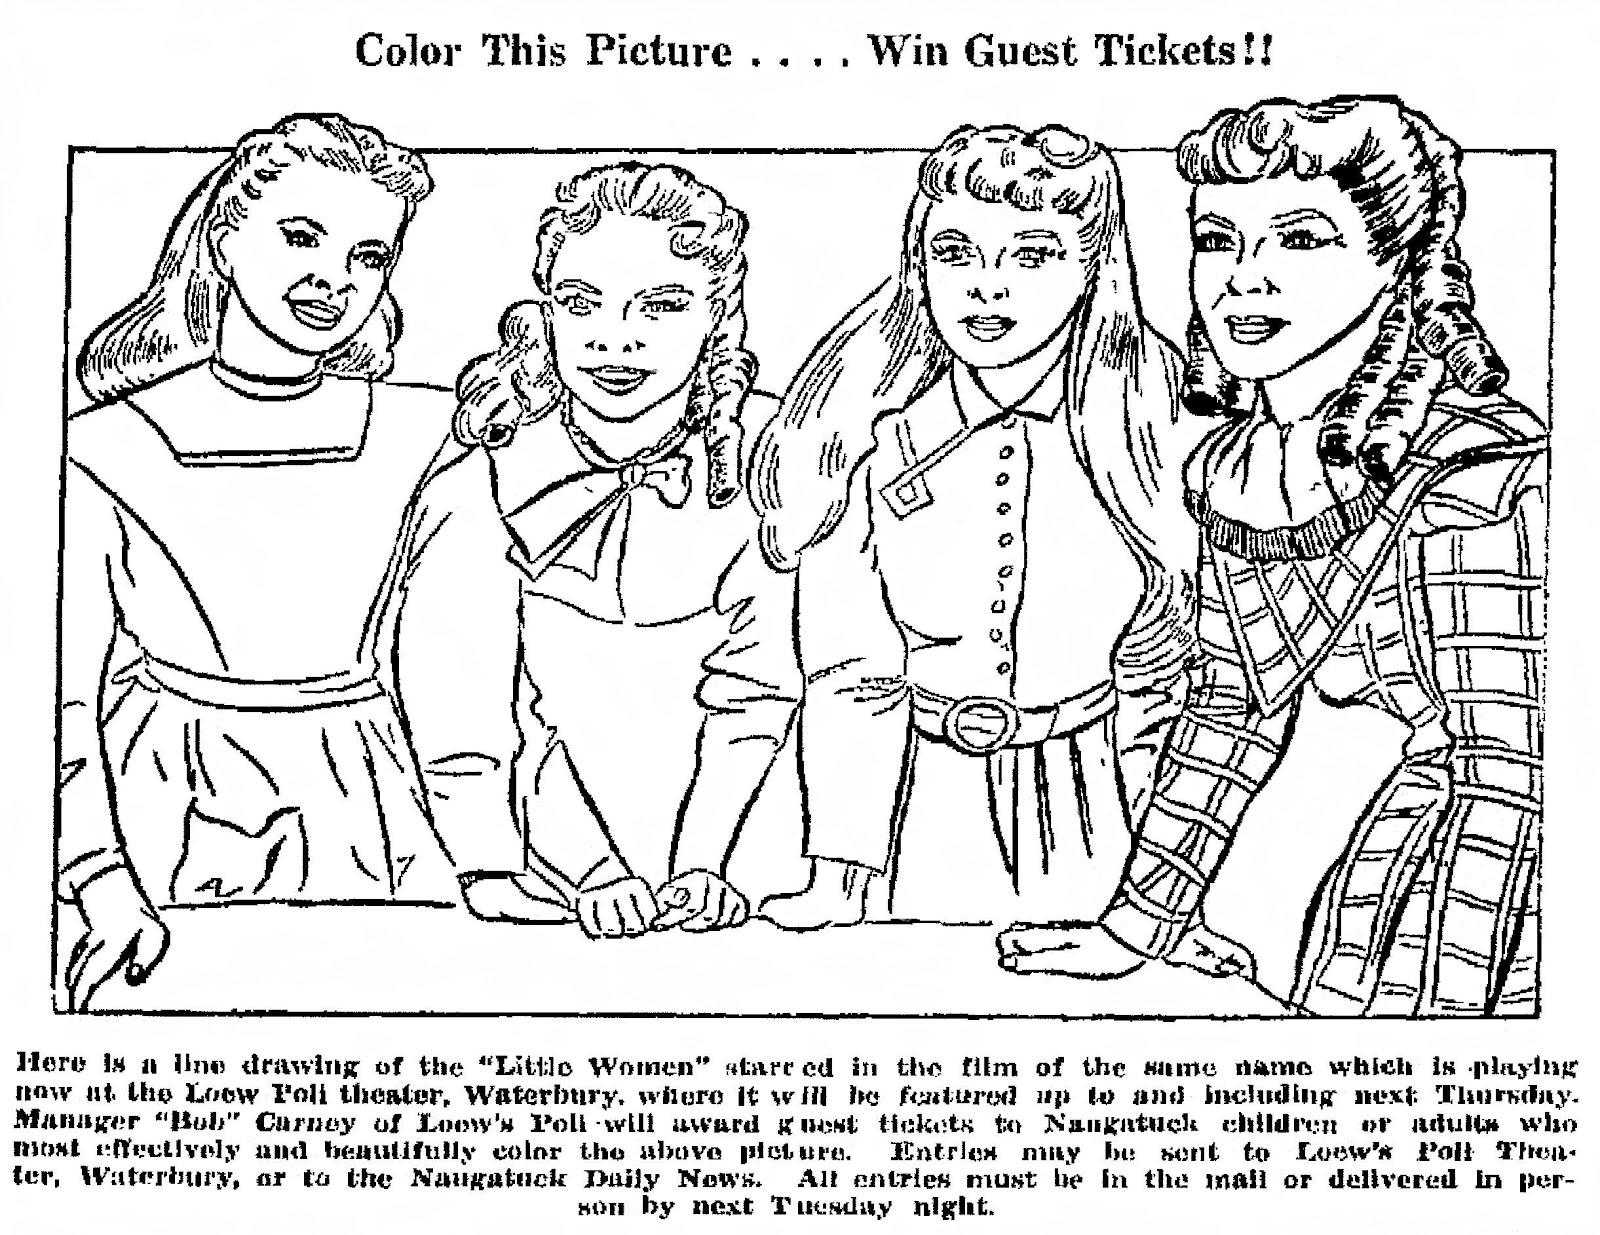 Mostly Paper Dolls Another Little Women Coloring Contest